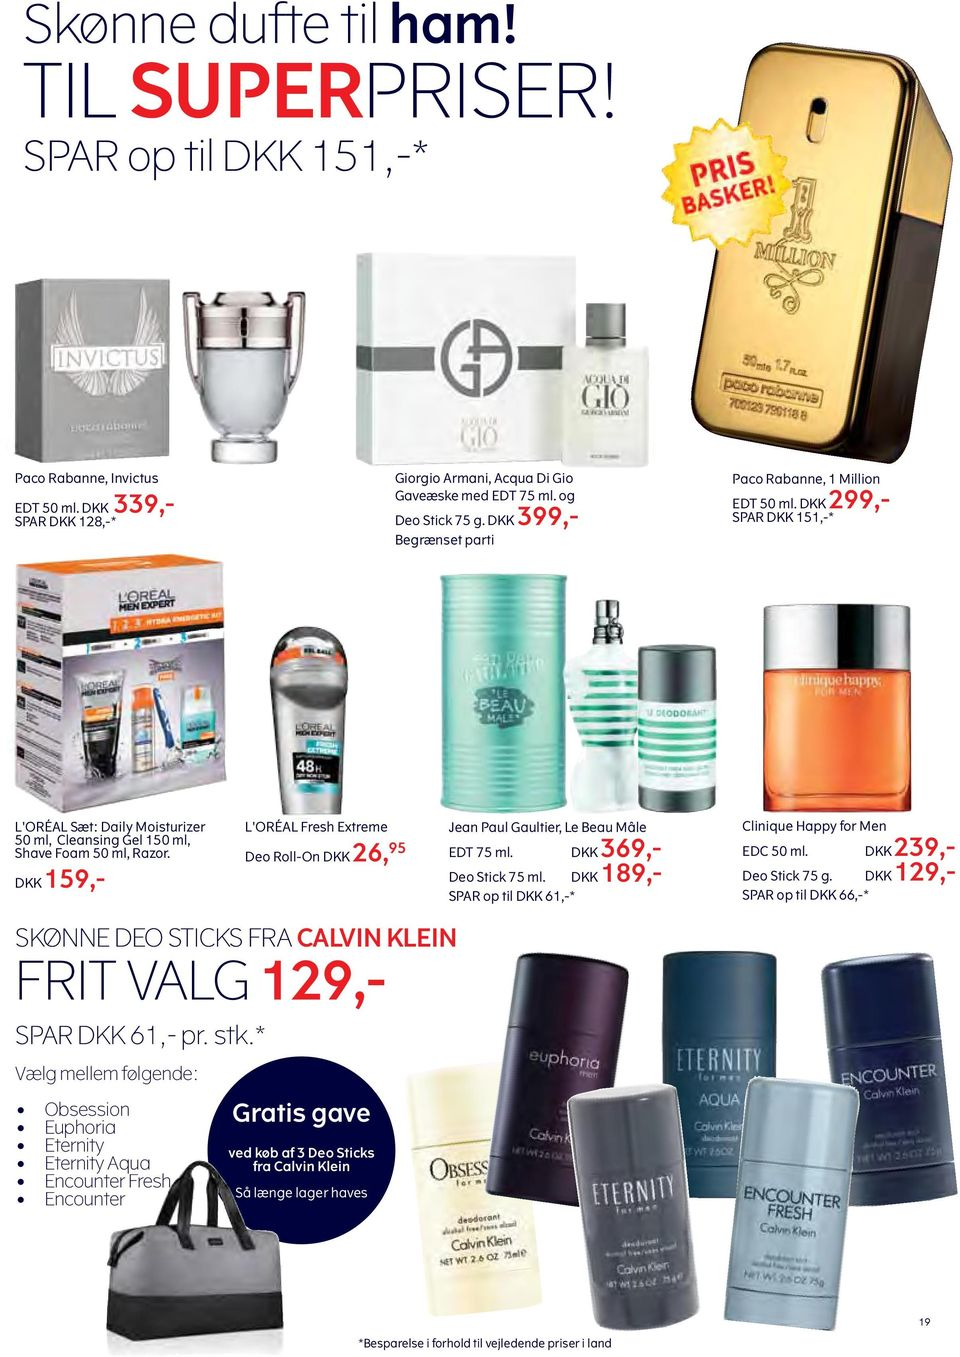 DKK 159,- L'ORÉAL Fresh Extreme Deo Roll-On DKK 26, 95 Jean Paul Gaultier, Le Beau Mâle EDT 75 ml. DKK 369,- Deo Stick 75 ml. DKK 189,- Spar op til DKK 61,-* Clinique Happy for Men EDC 50 ml.